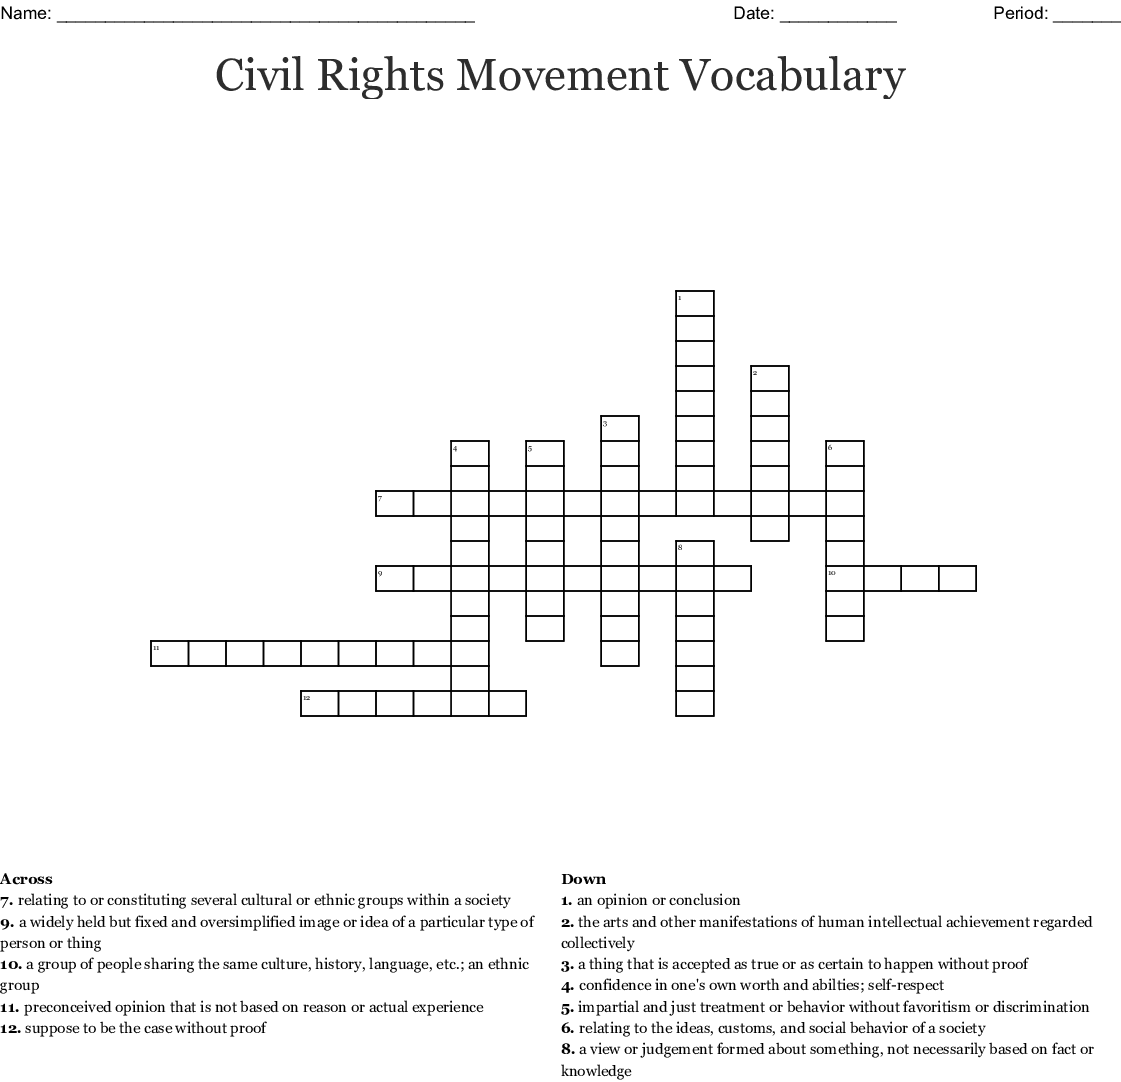 Civil Rights Movement Worksheet Answers